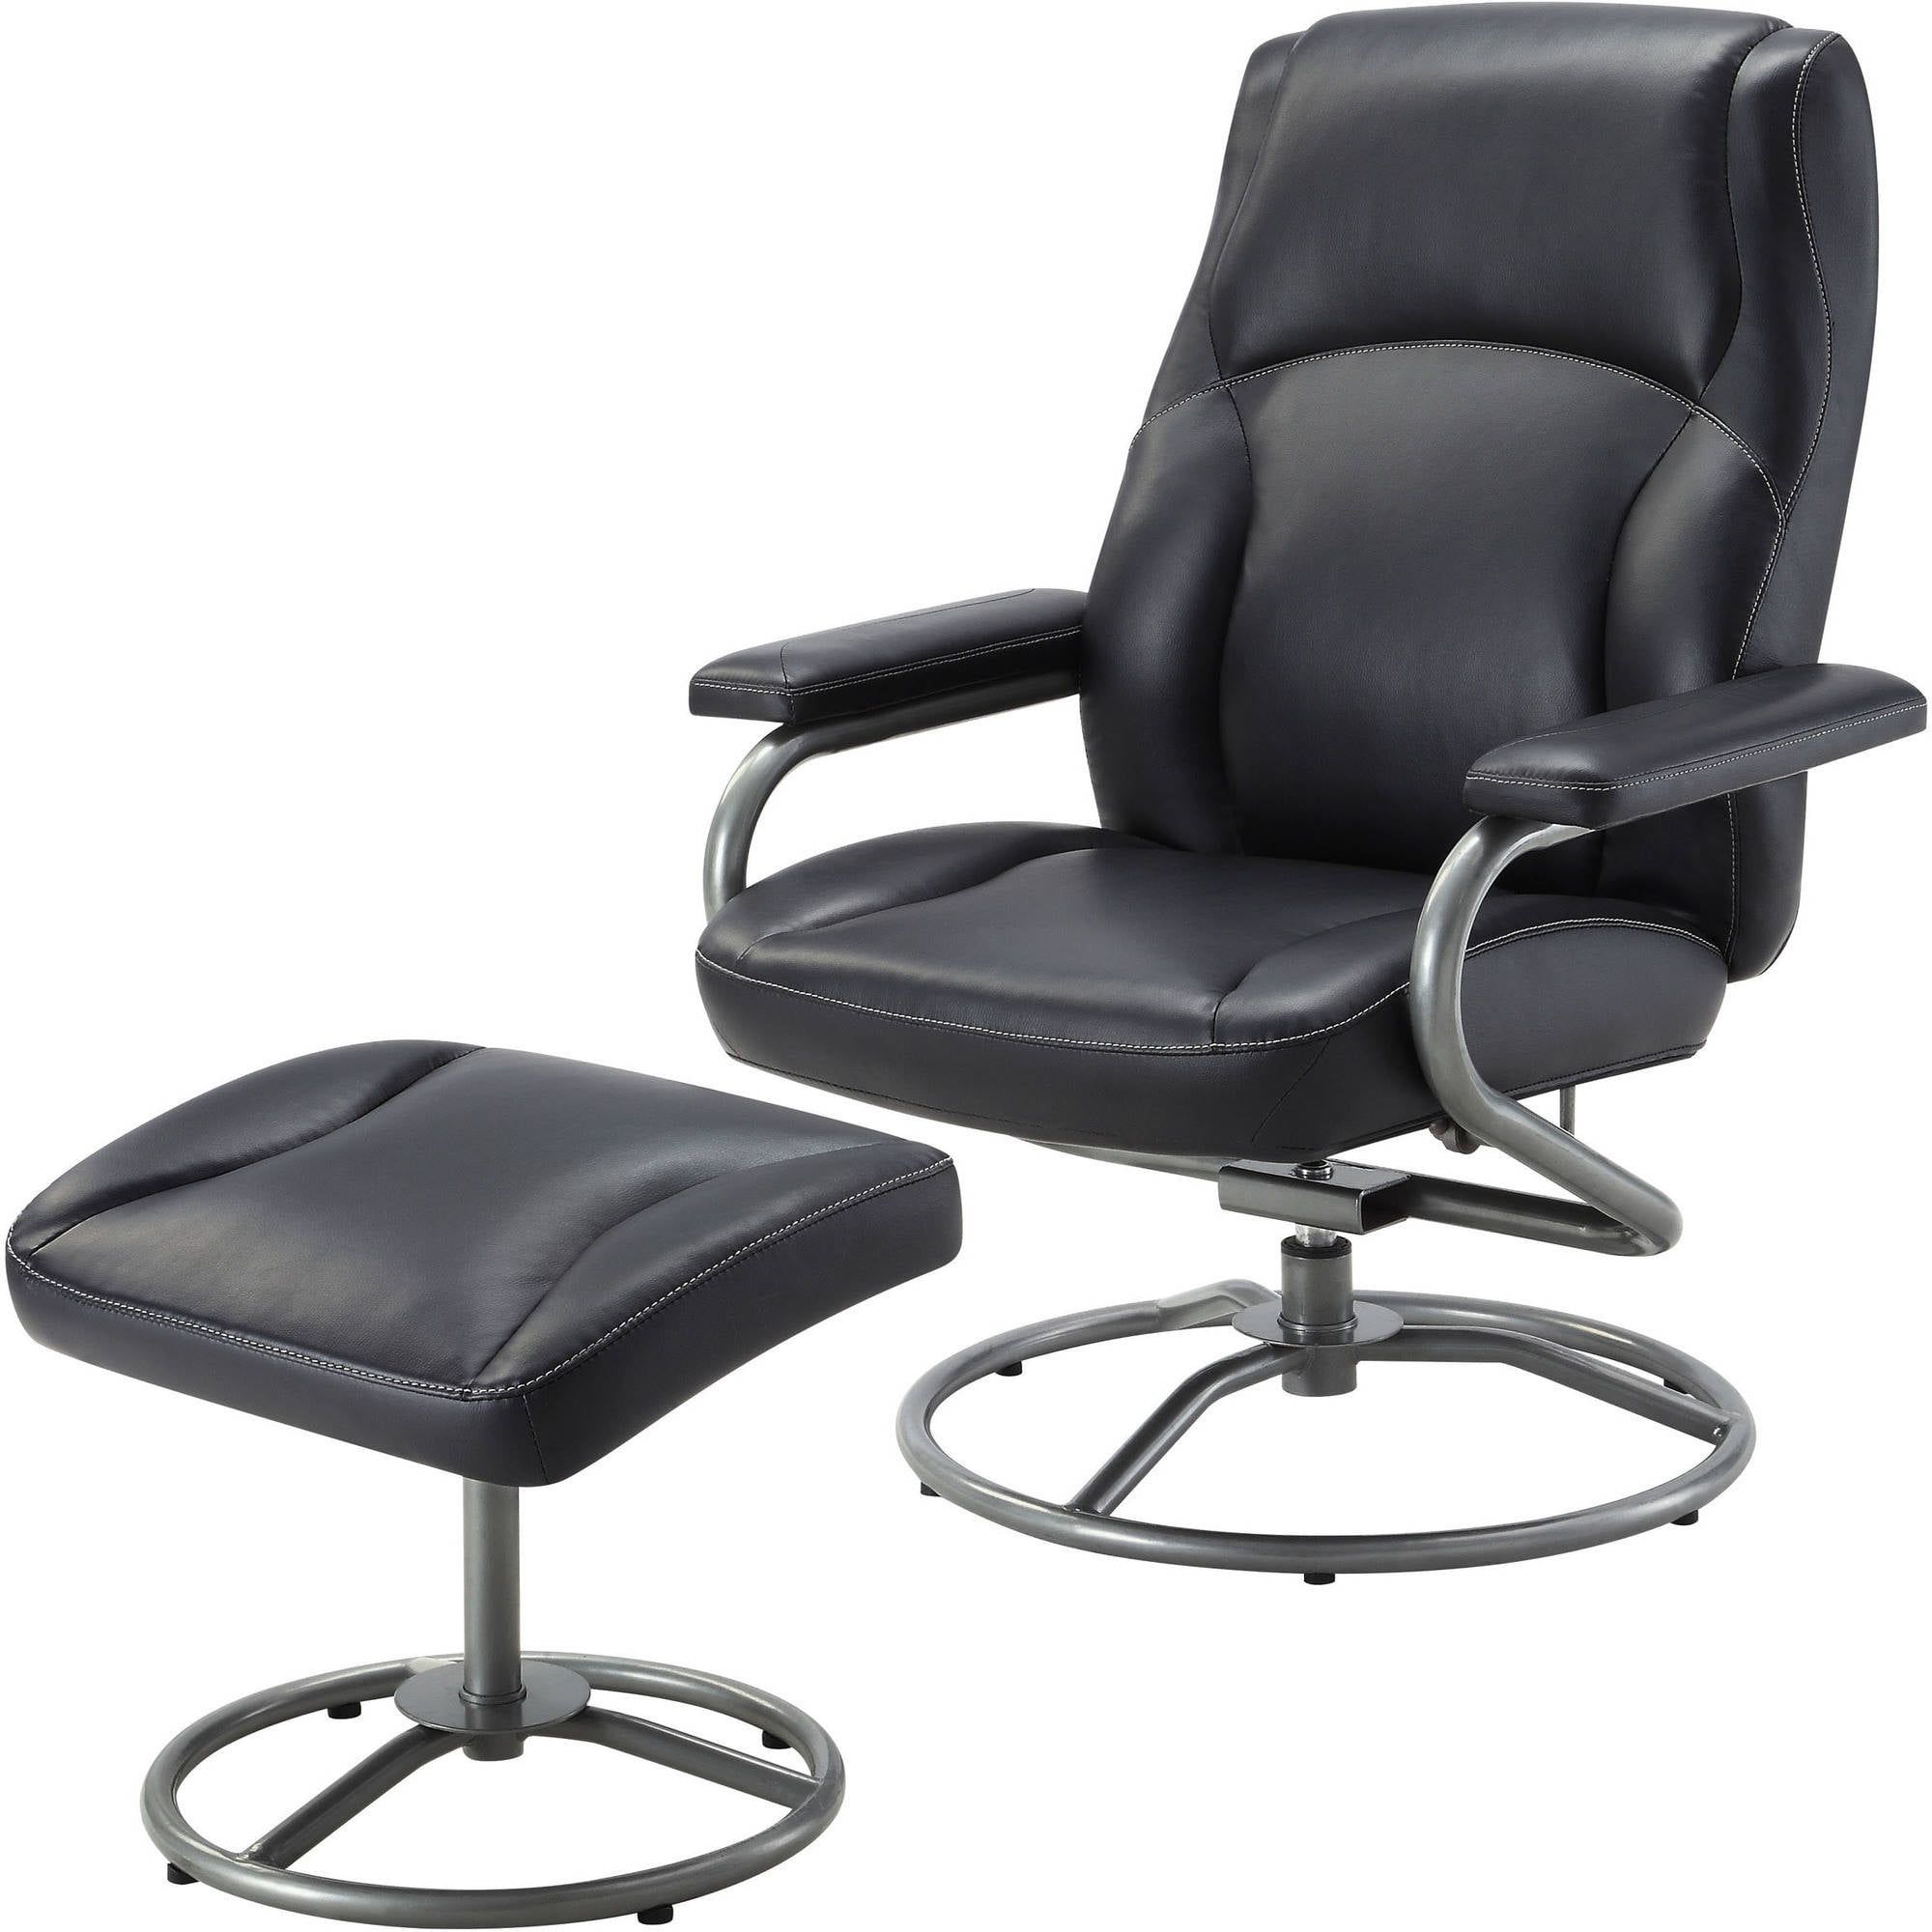 Mainstays Recliner And Ottoman Set, Multiple Colors   Walmart.com